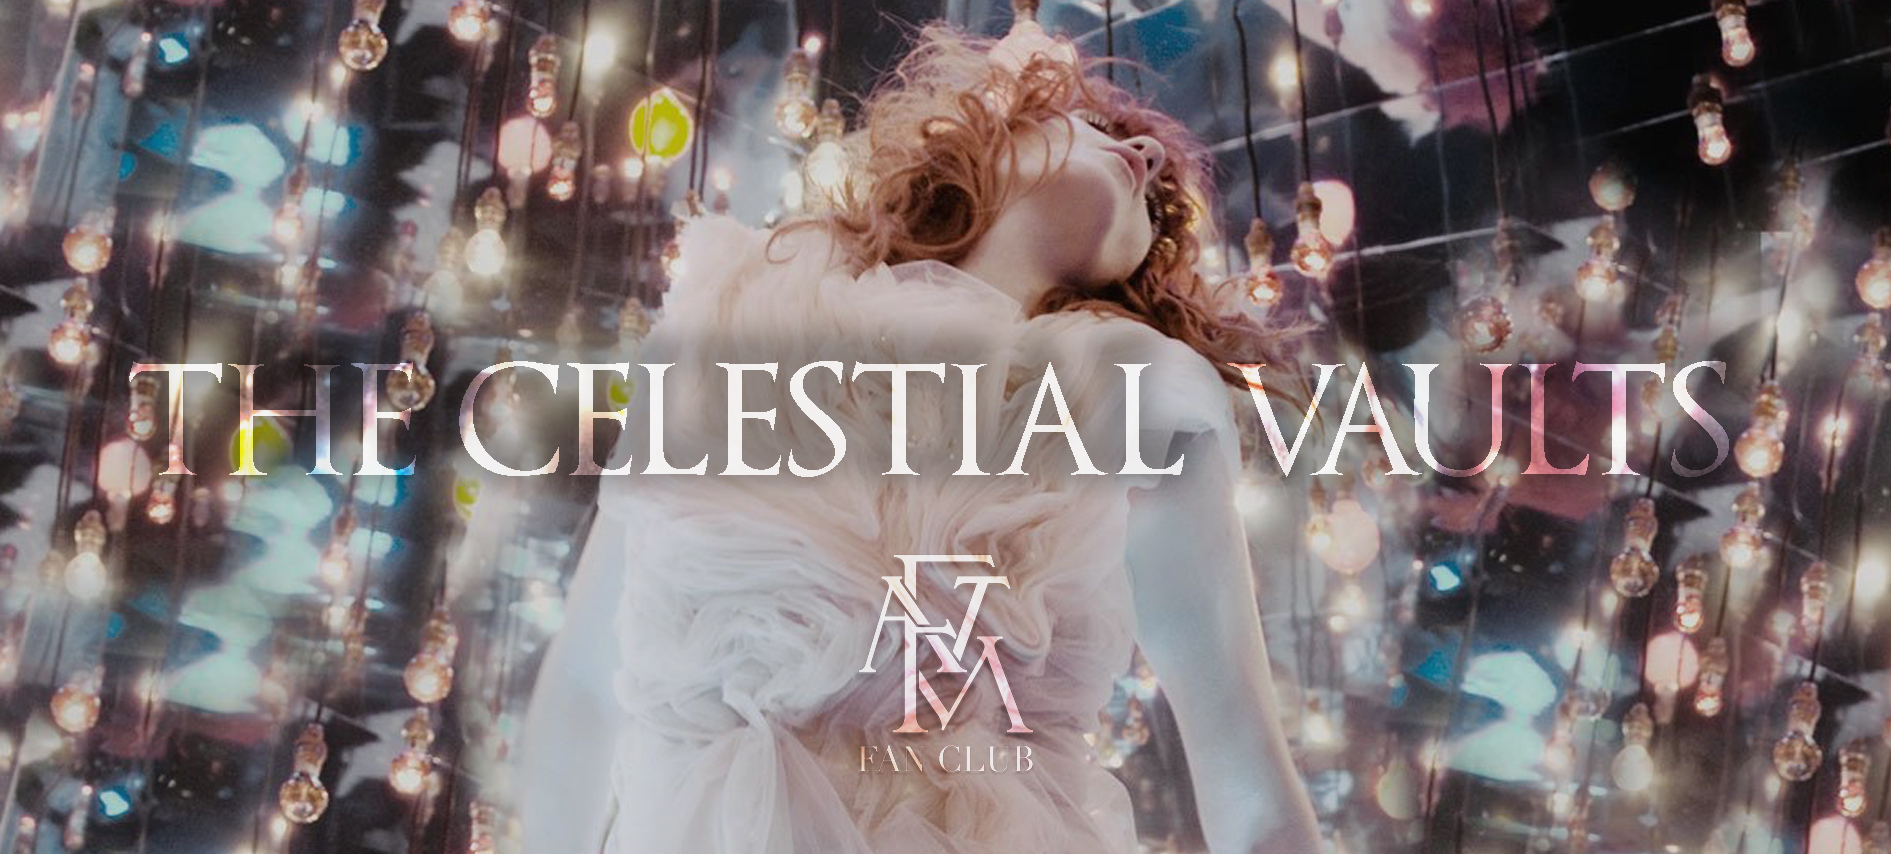 Celestial vaults banner by florence and the machine fan club.jpg